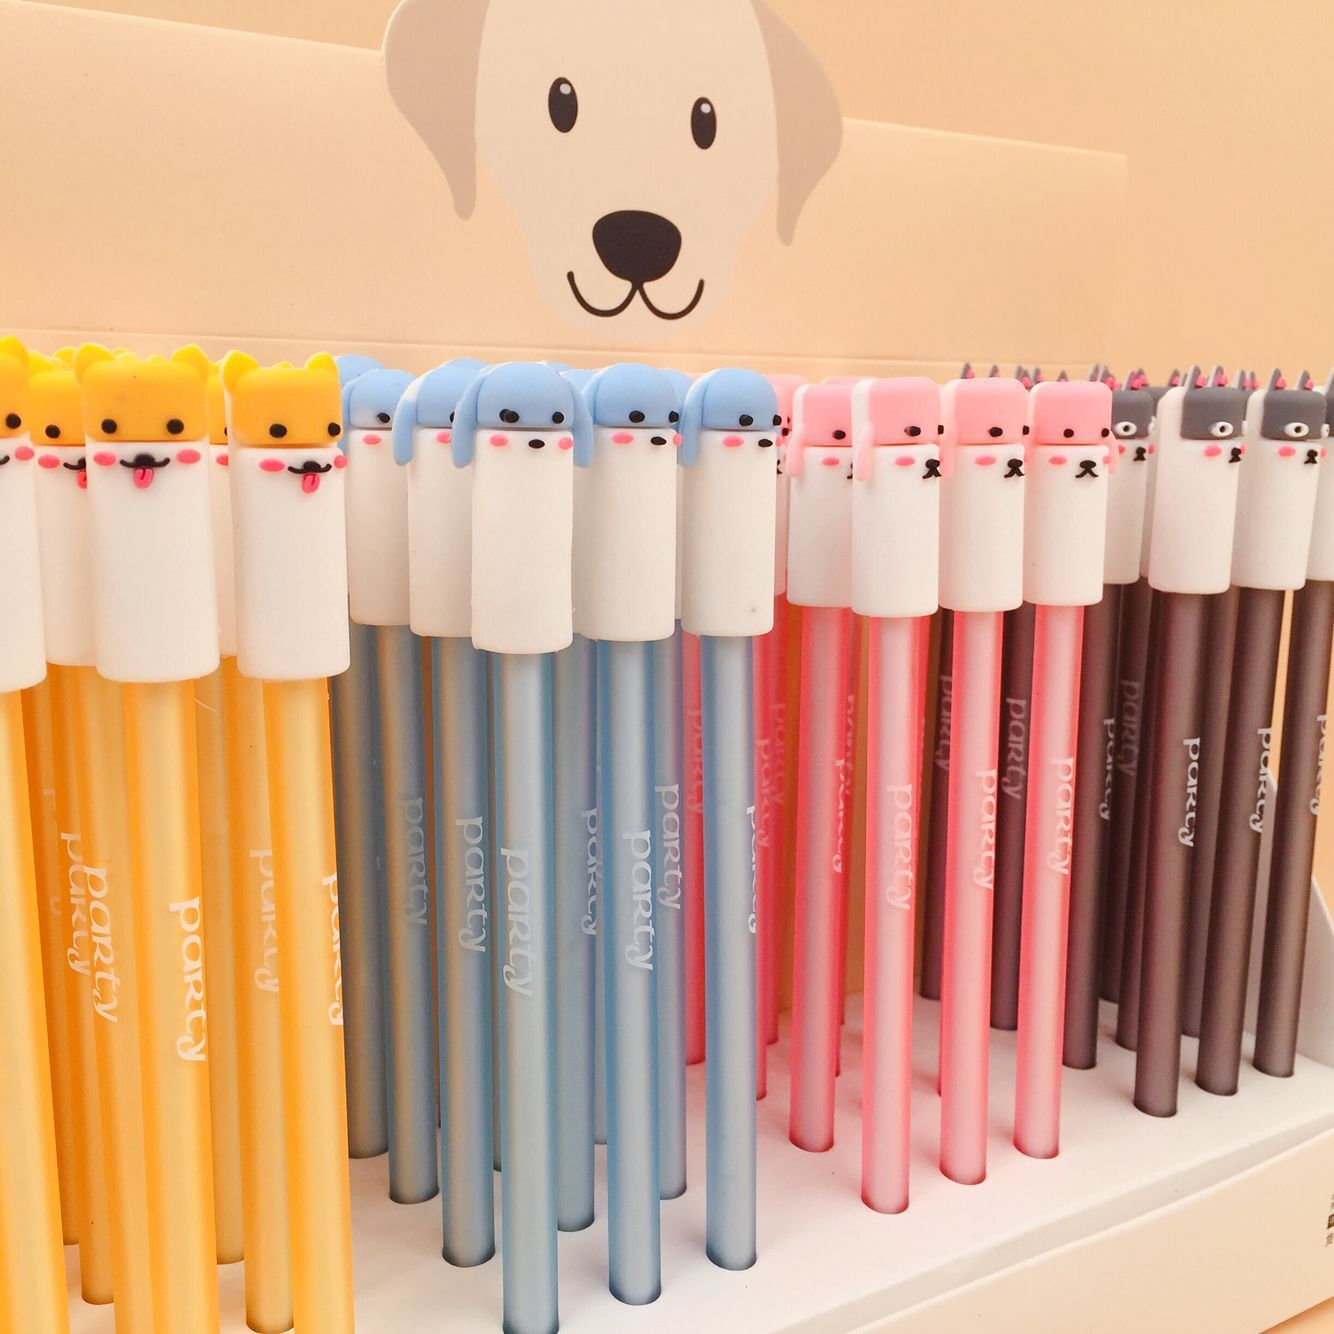 48pcs Creative Stationery Student Pen Silicone Dog Gel Pen 0.5mm Full Needle Black Ink Pen School Supplies Office Supplies 0.5mm48pcs Creative Stationery Student Pen Silicone Dog Gel Pen 0.5mm Full Needle Black Ink Pen School Supplies Office Supplies 0.5mm